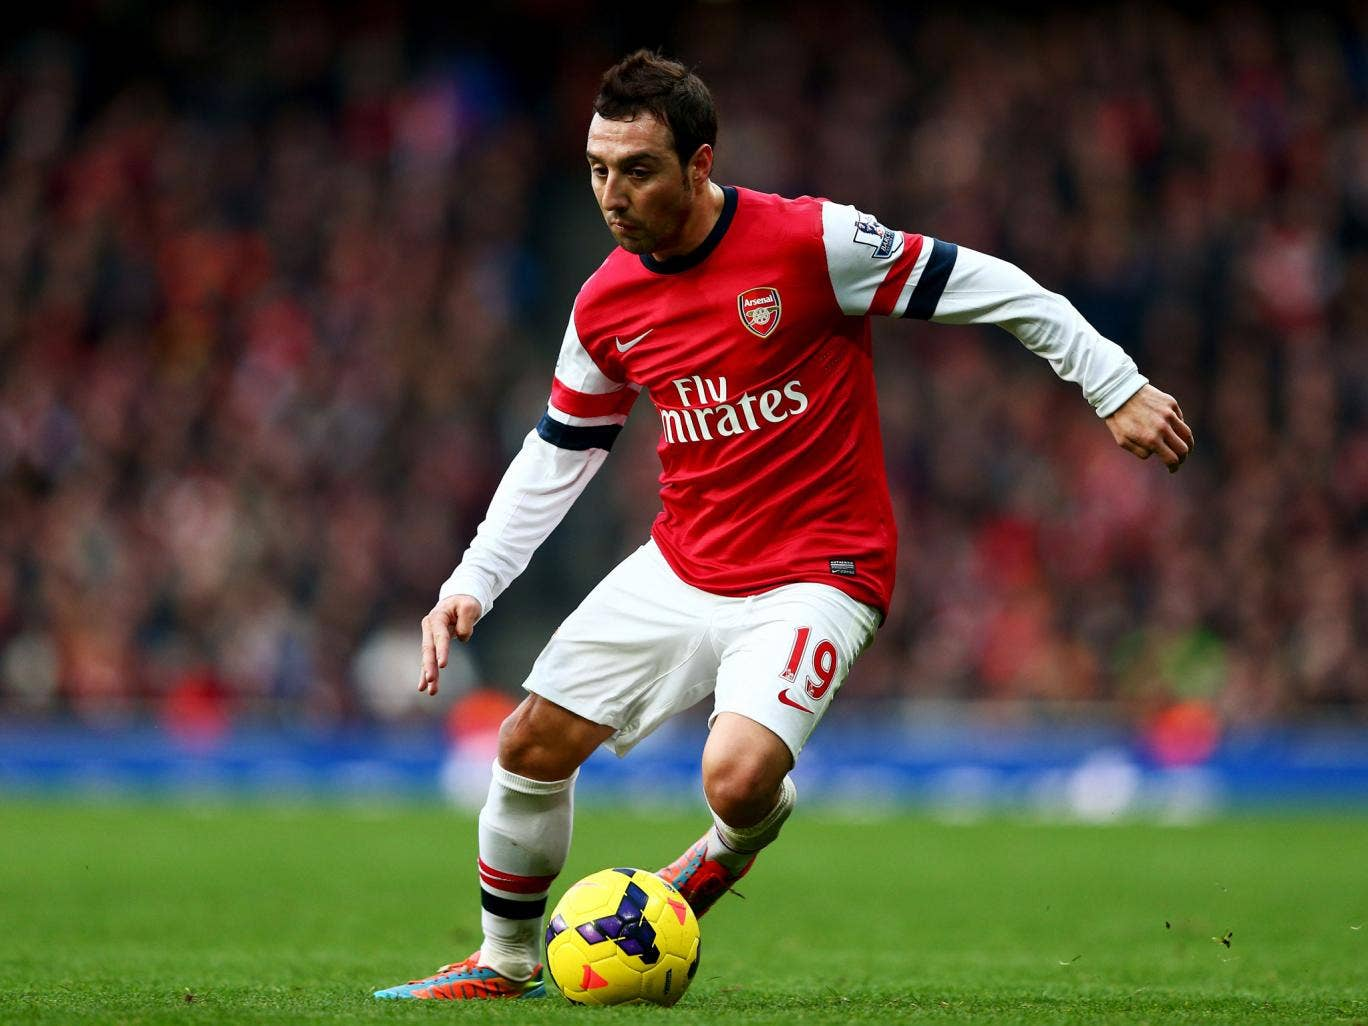 Santi Cazorla believes Arsenal are top of the Premier League table on merit following the 2-0 win over Fulham